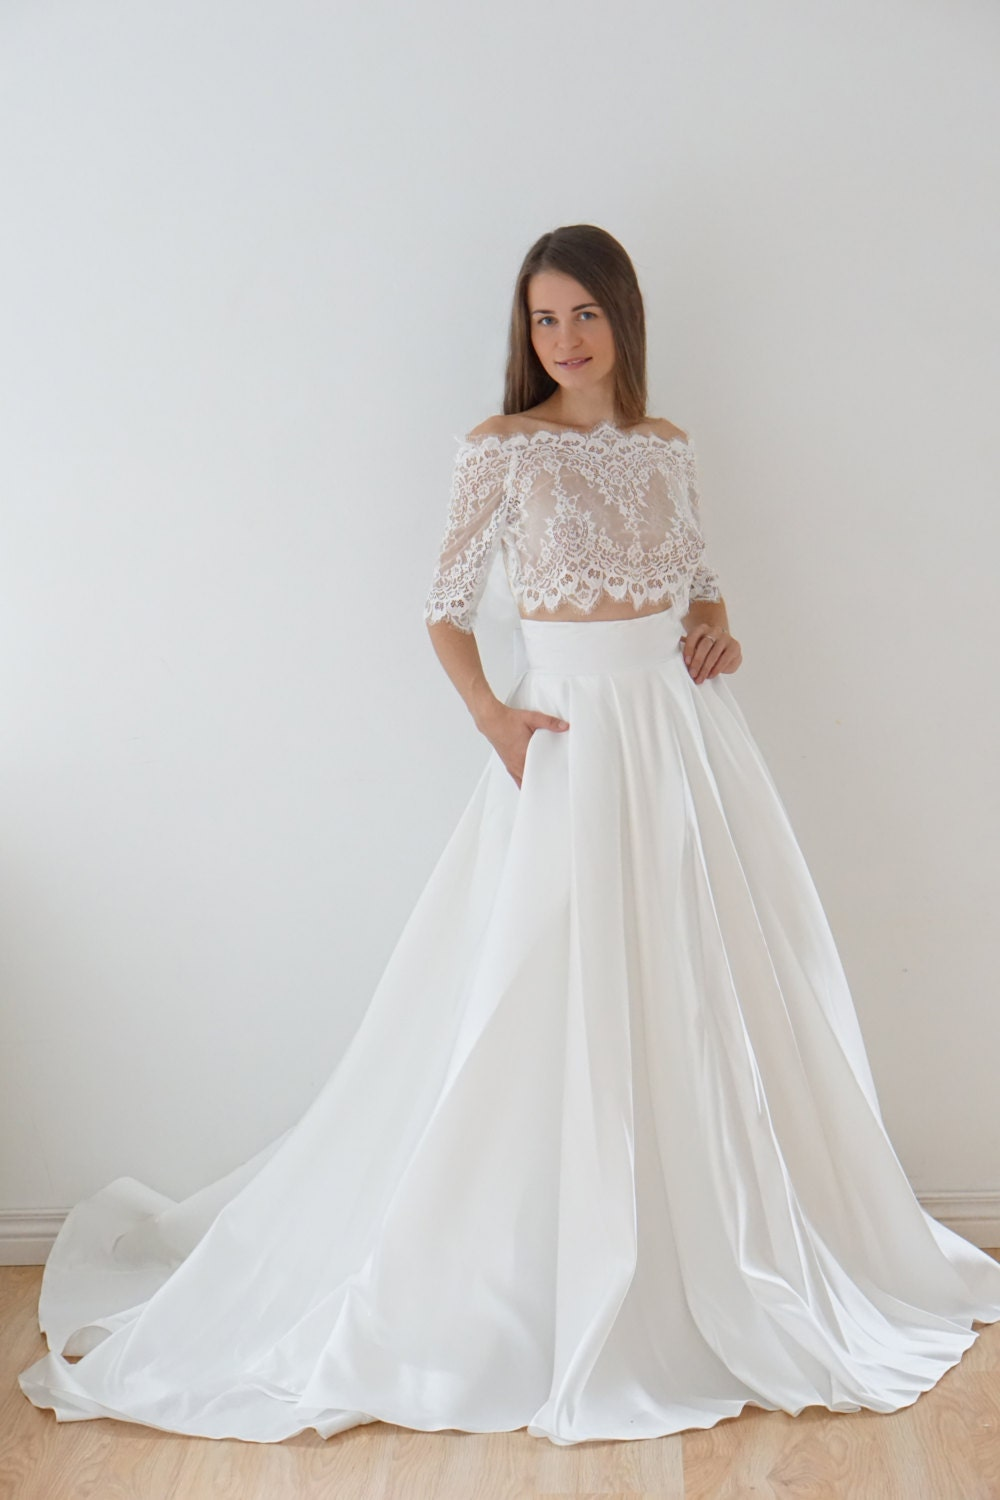 Crop Top wedding dress satin wedding dress lace top lace